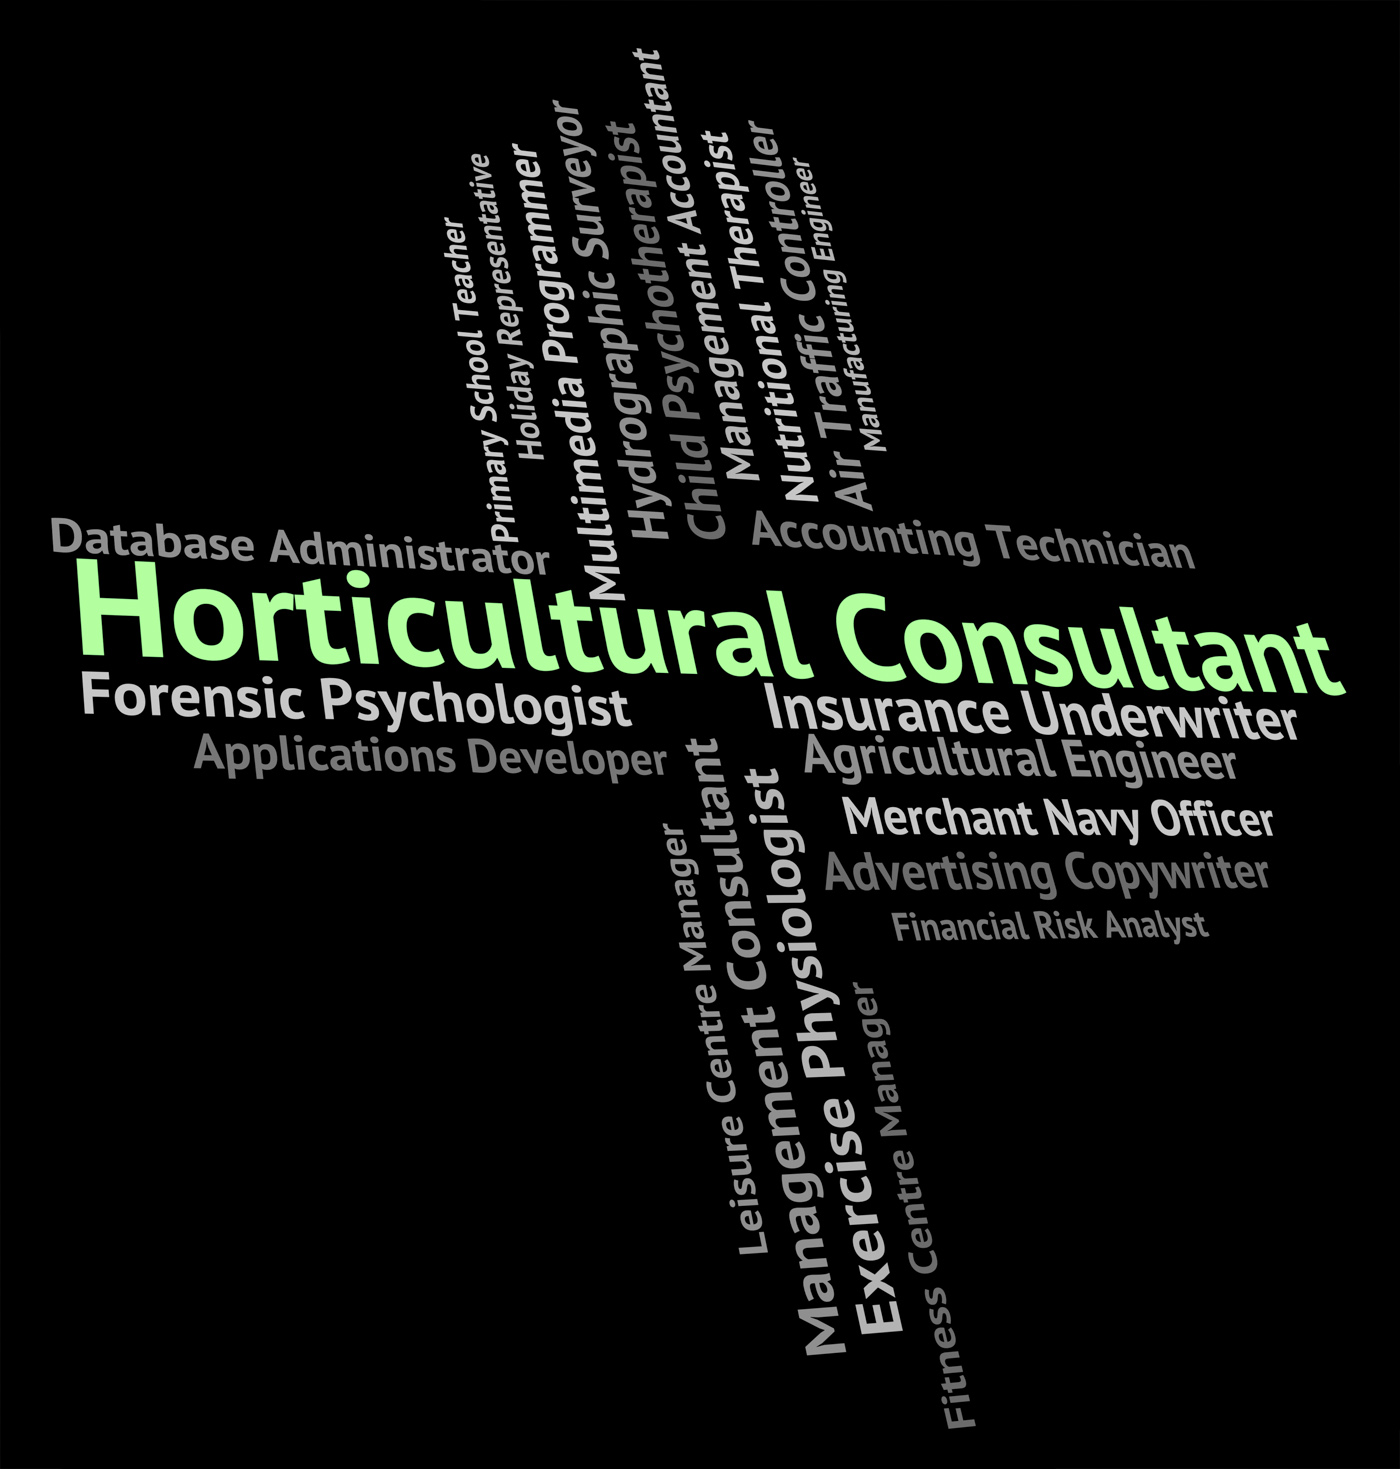 Horticultural Consultant Represents Word Farmed And Jobs, Adviser, Jobs, Hire, Hiring, HQ Photo